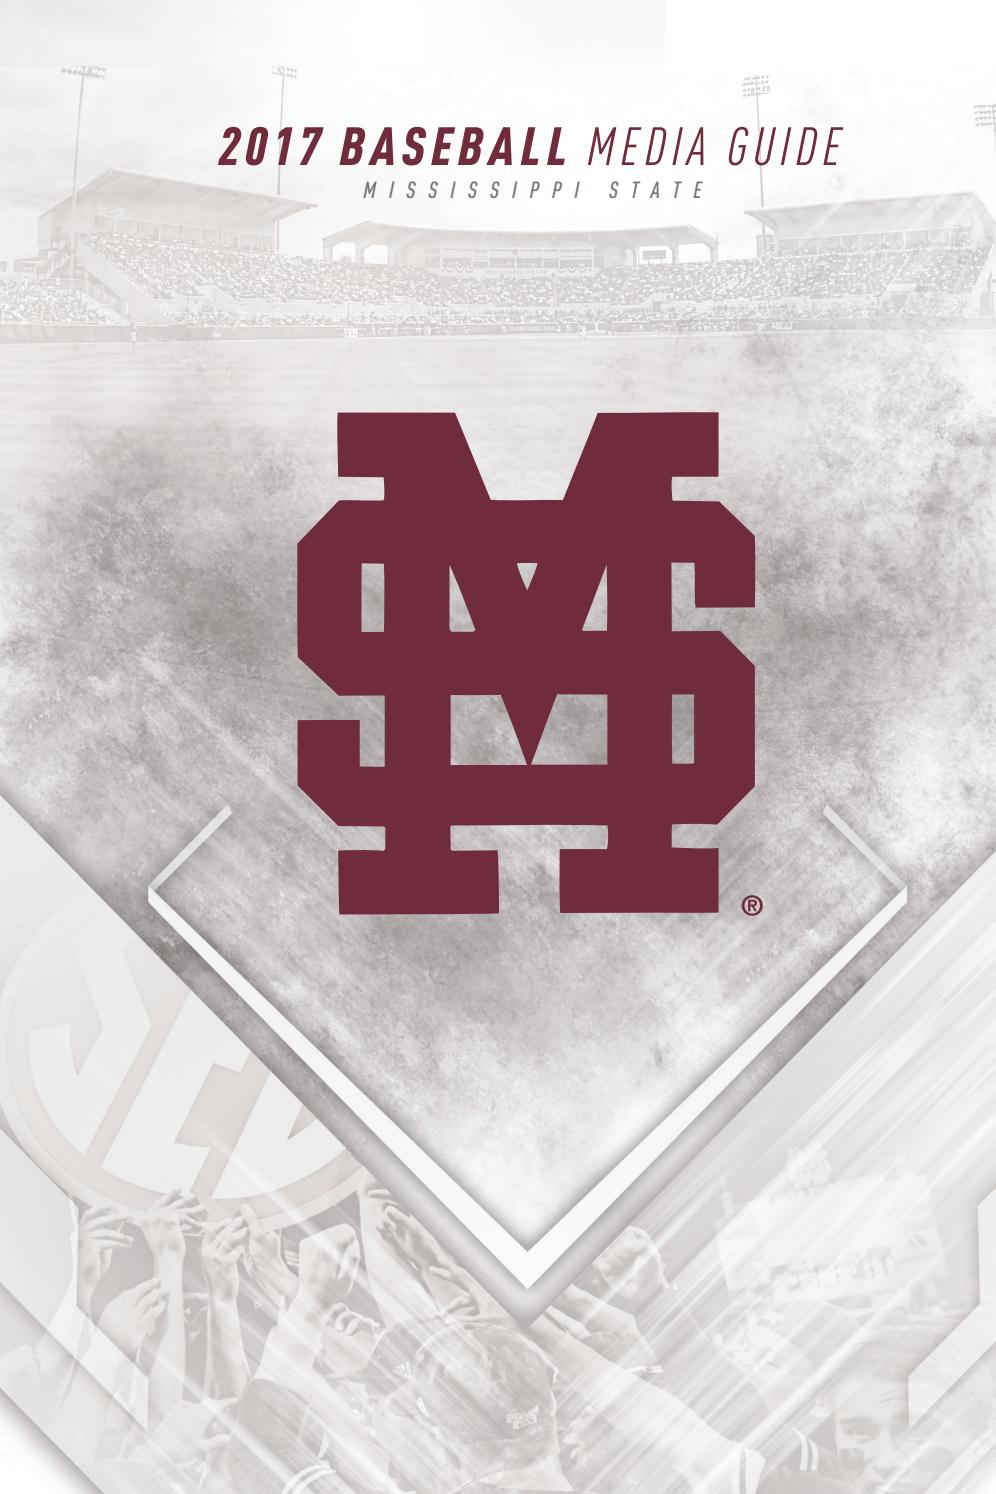 2017 mississippi state baseball media guide by mississippi